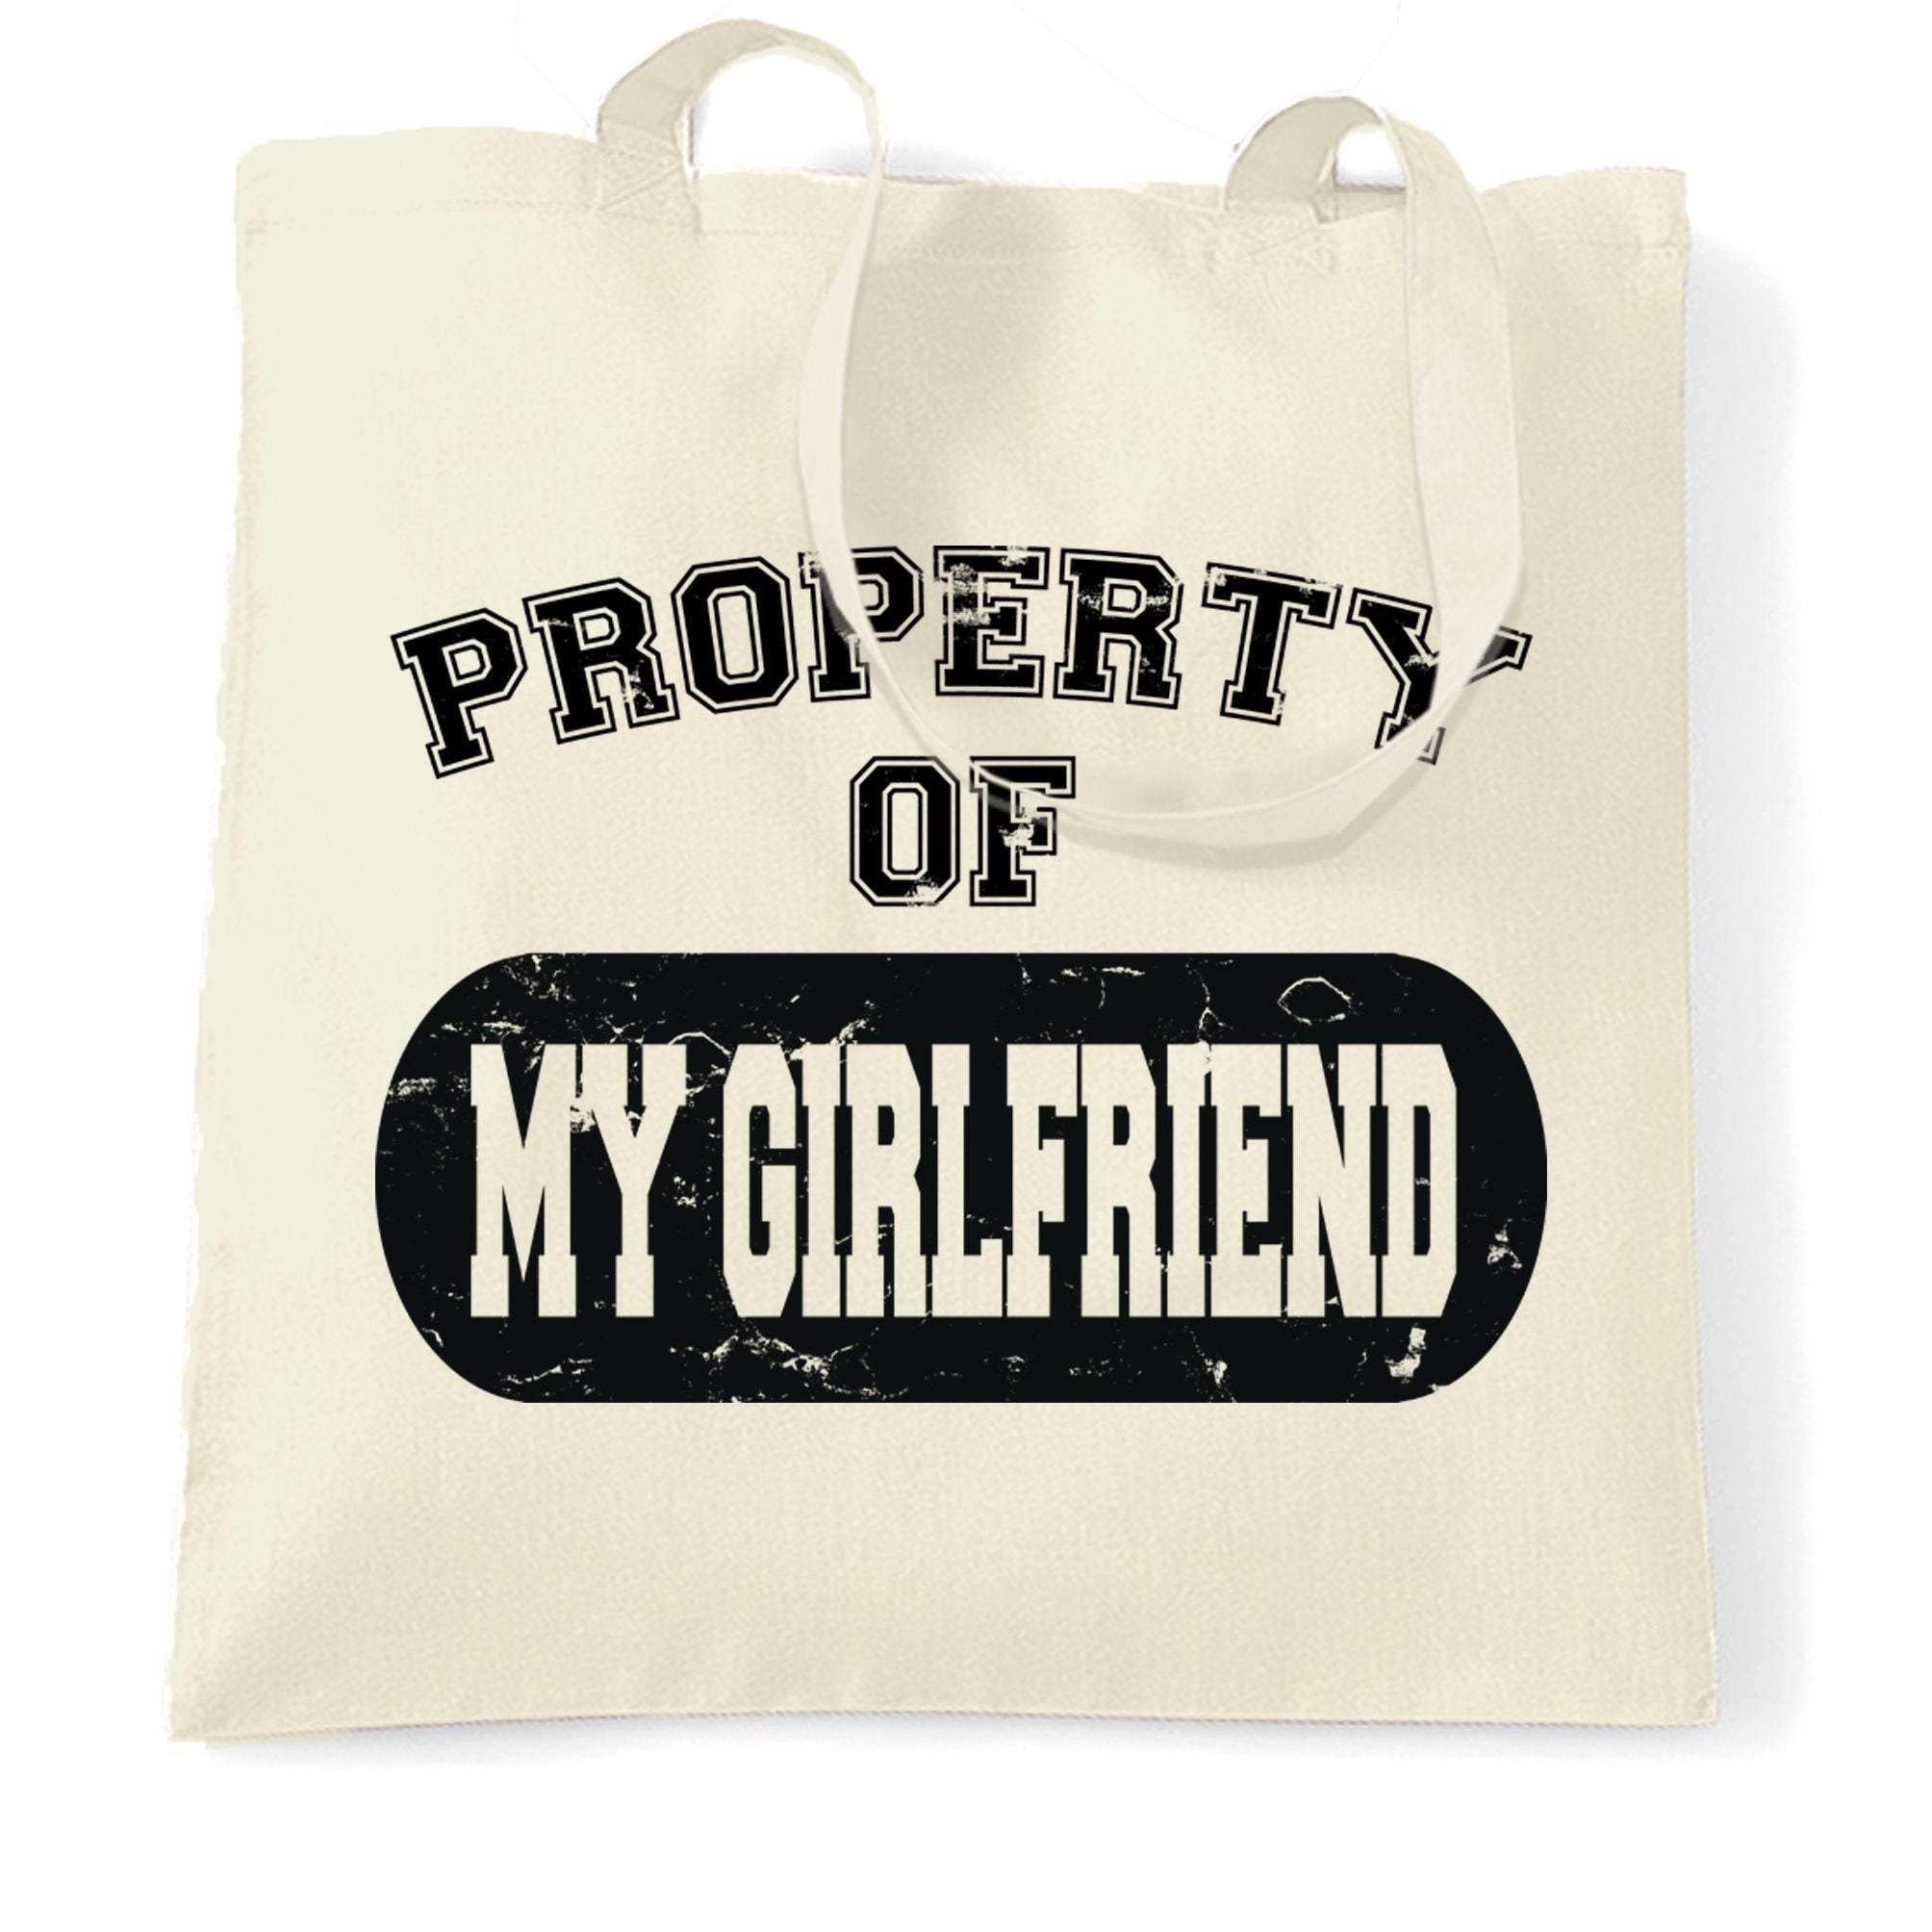 Valentine's Day Tote Bag Property Of My Girlfriend